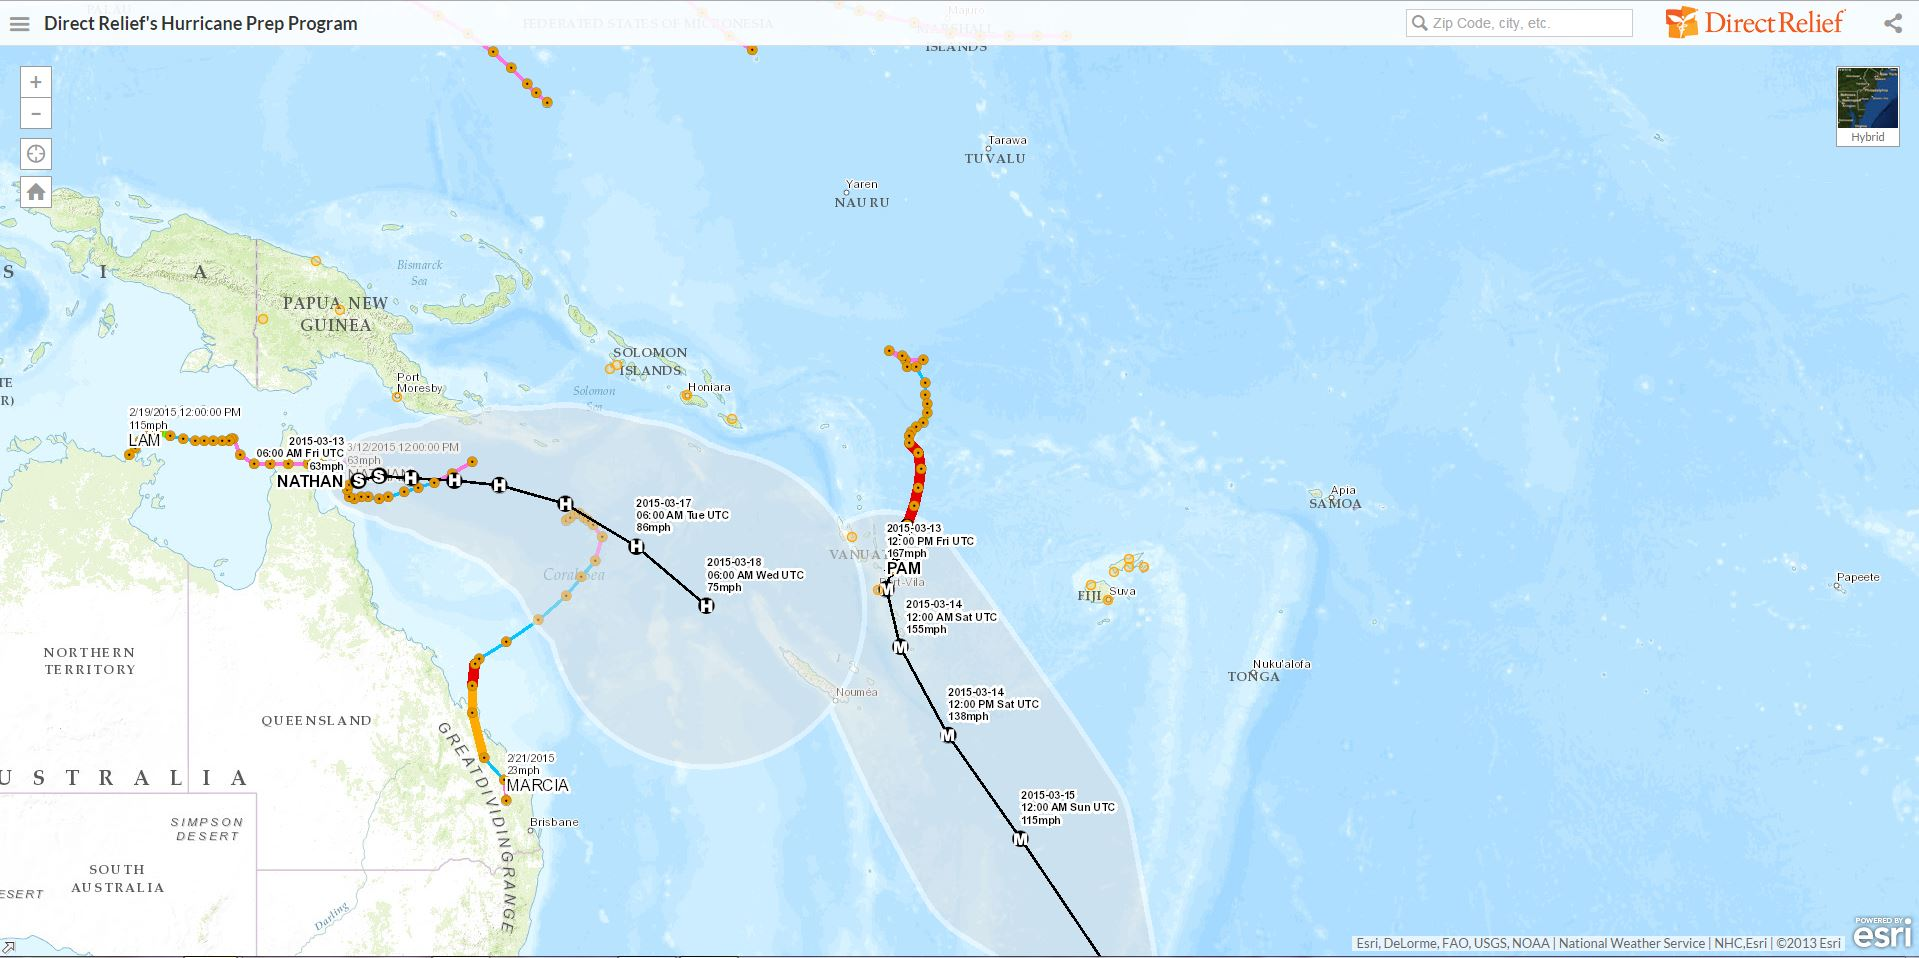 Tropical Cyclone Pam Monitored on Direct Relief Hurricane Map